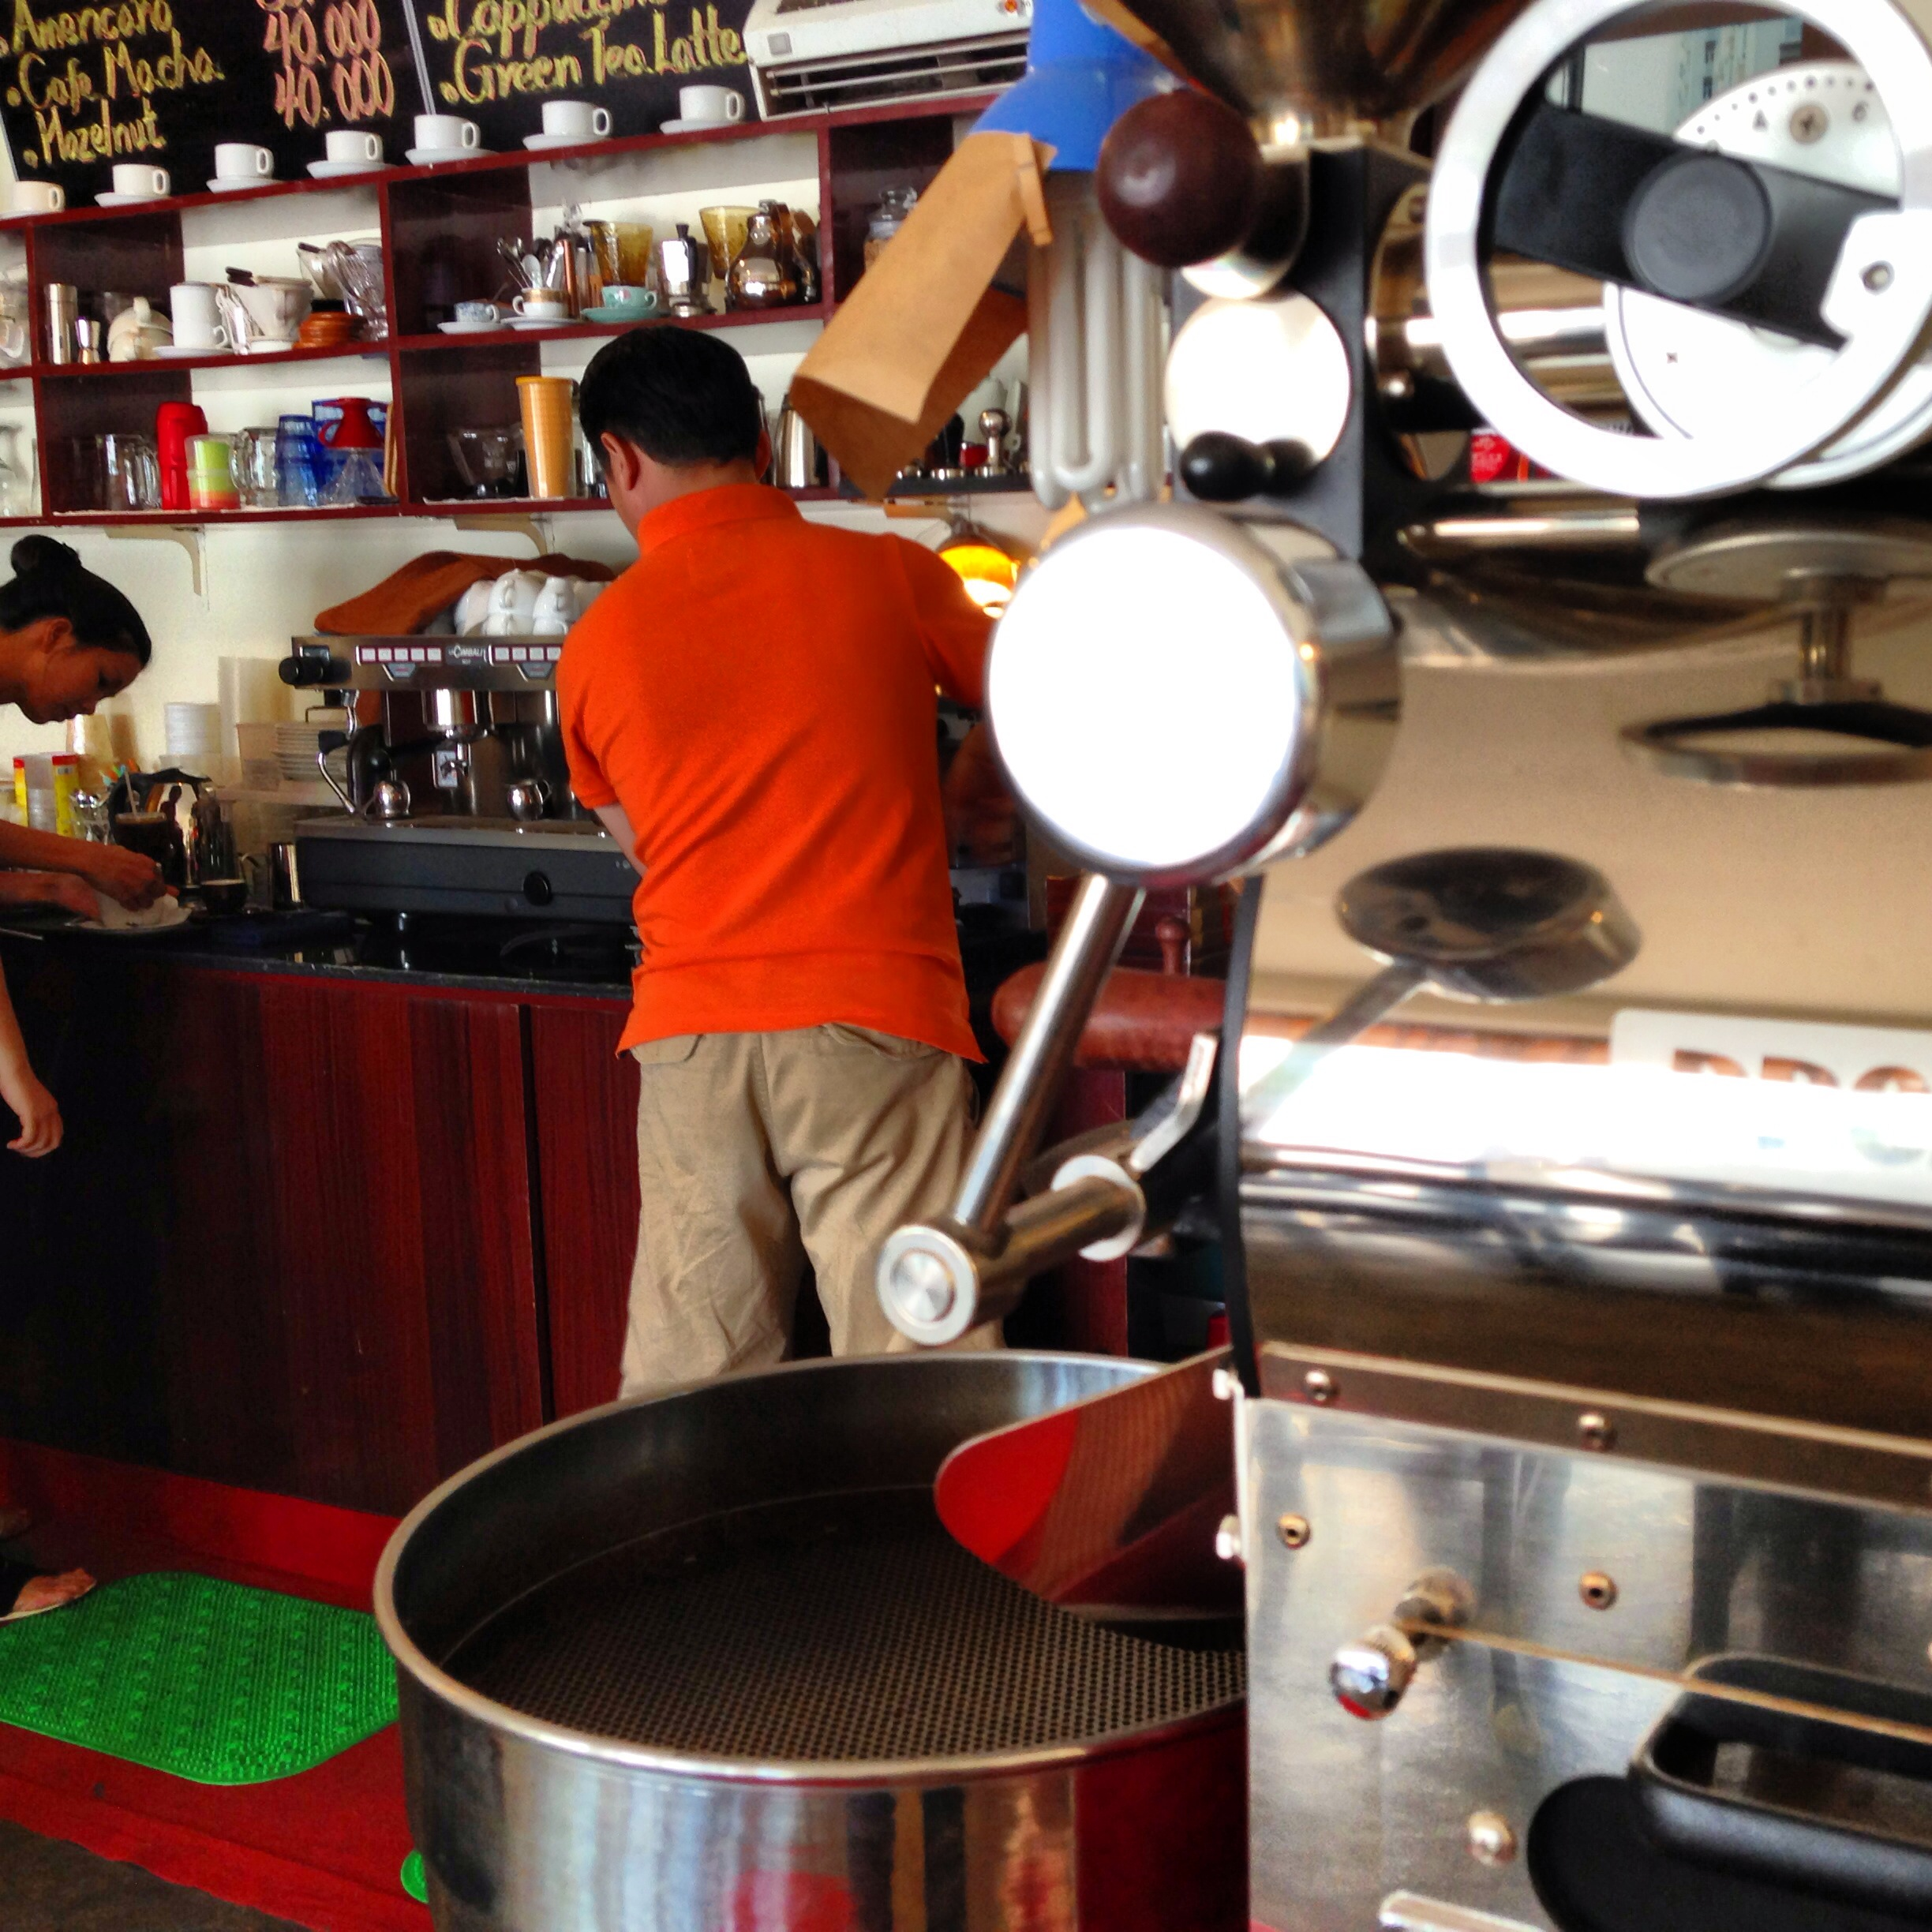 Zip Coffee, in District 7, owned and operated by Jo Young Jin, a Korean expat.